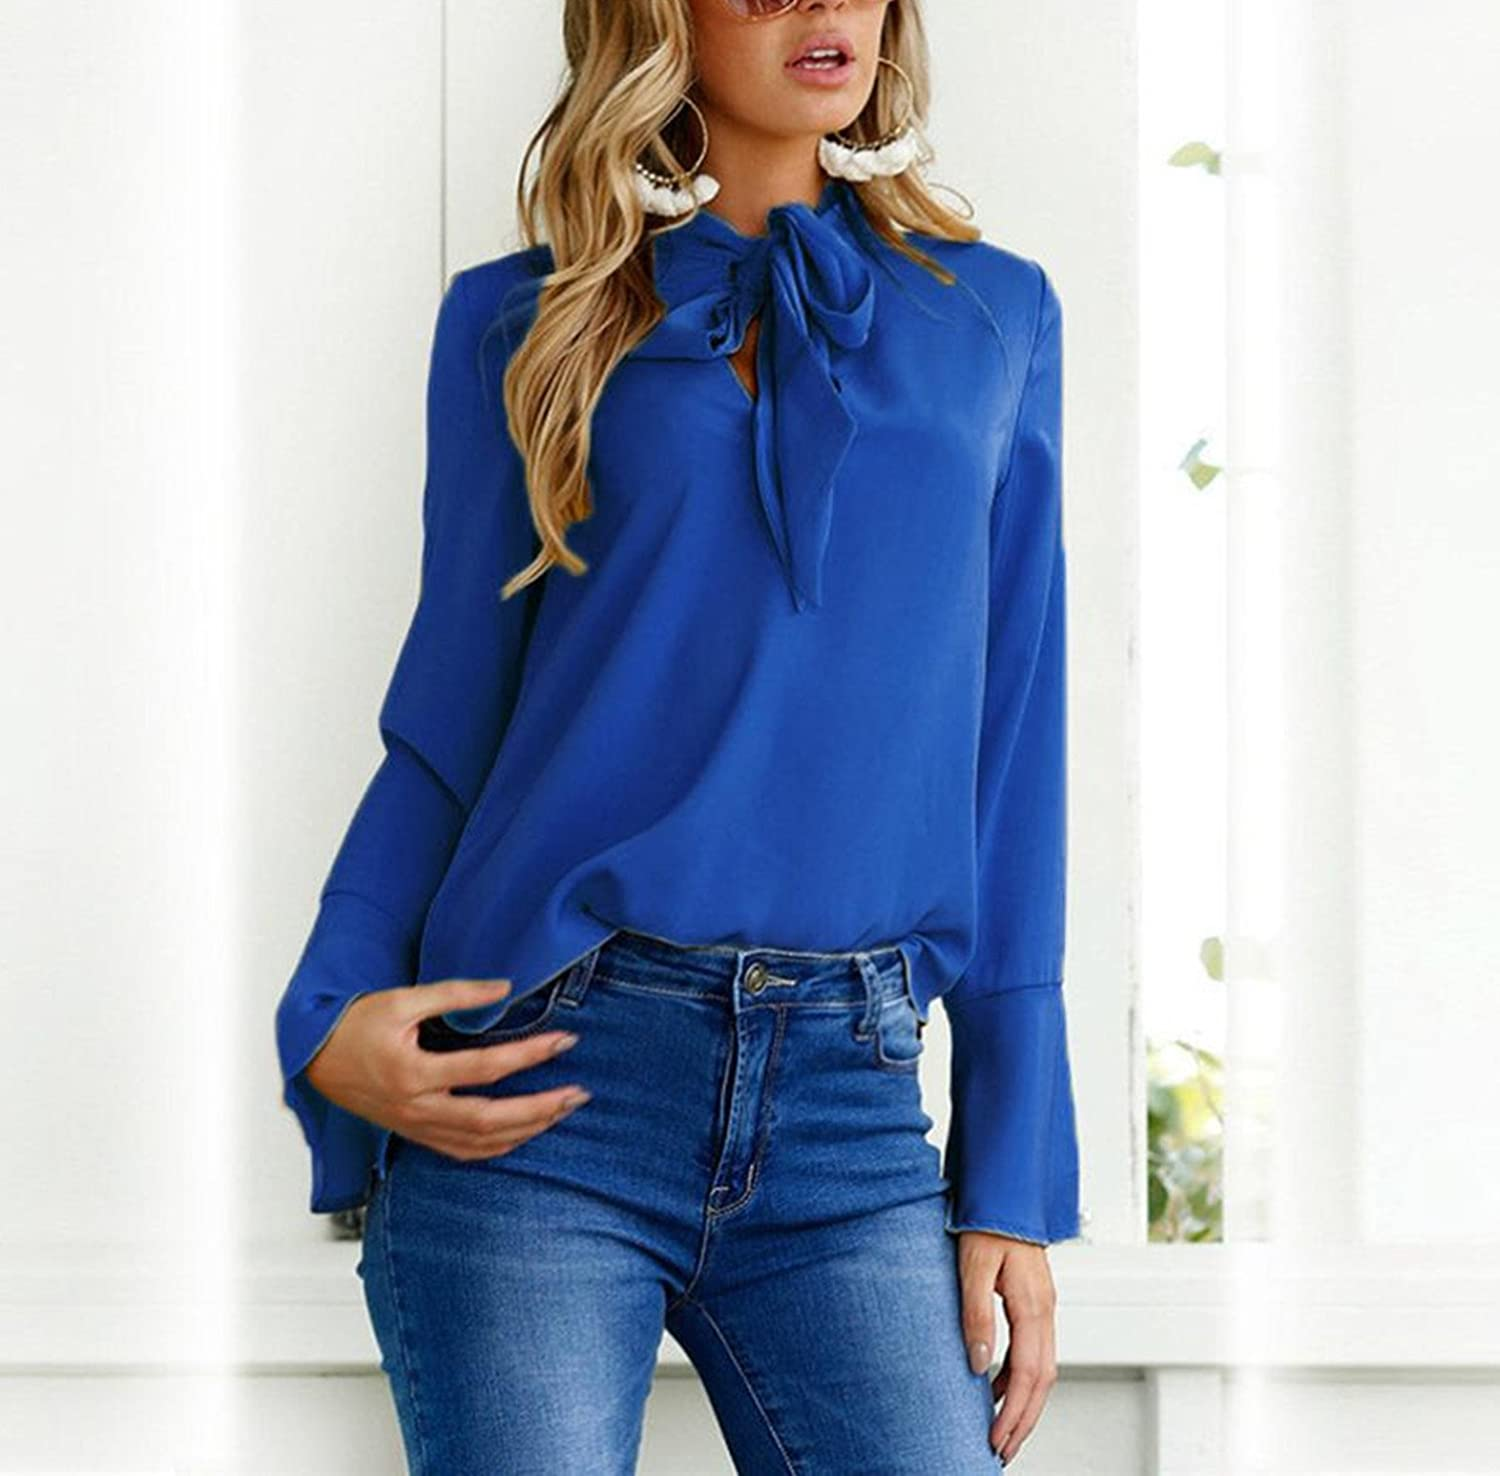 06048ea859d BSGSH Women s Blouses Tie-Bow Neck Solid Shirts Long Bell Sleeve Fashion  Tops at Amazon Women s Clothing store